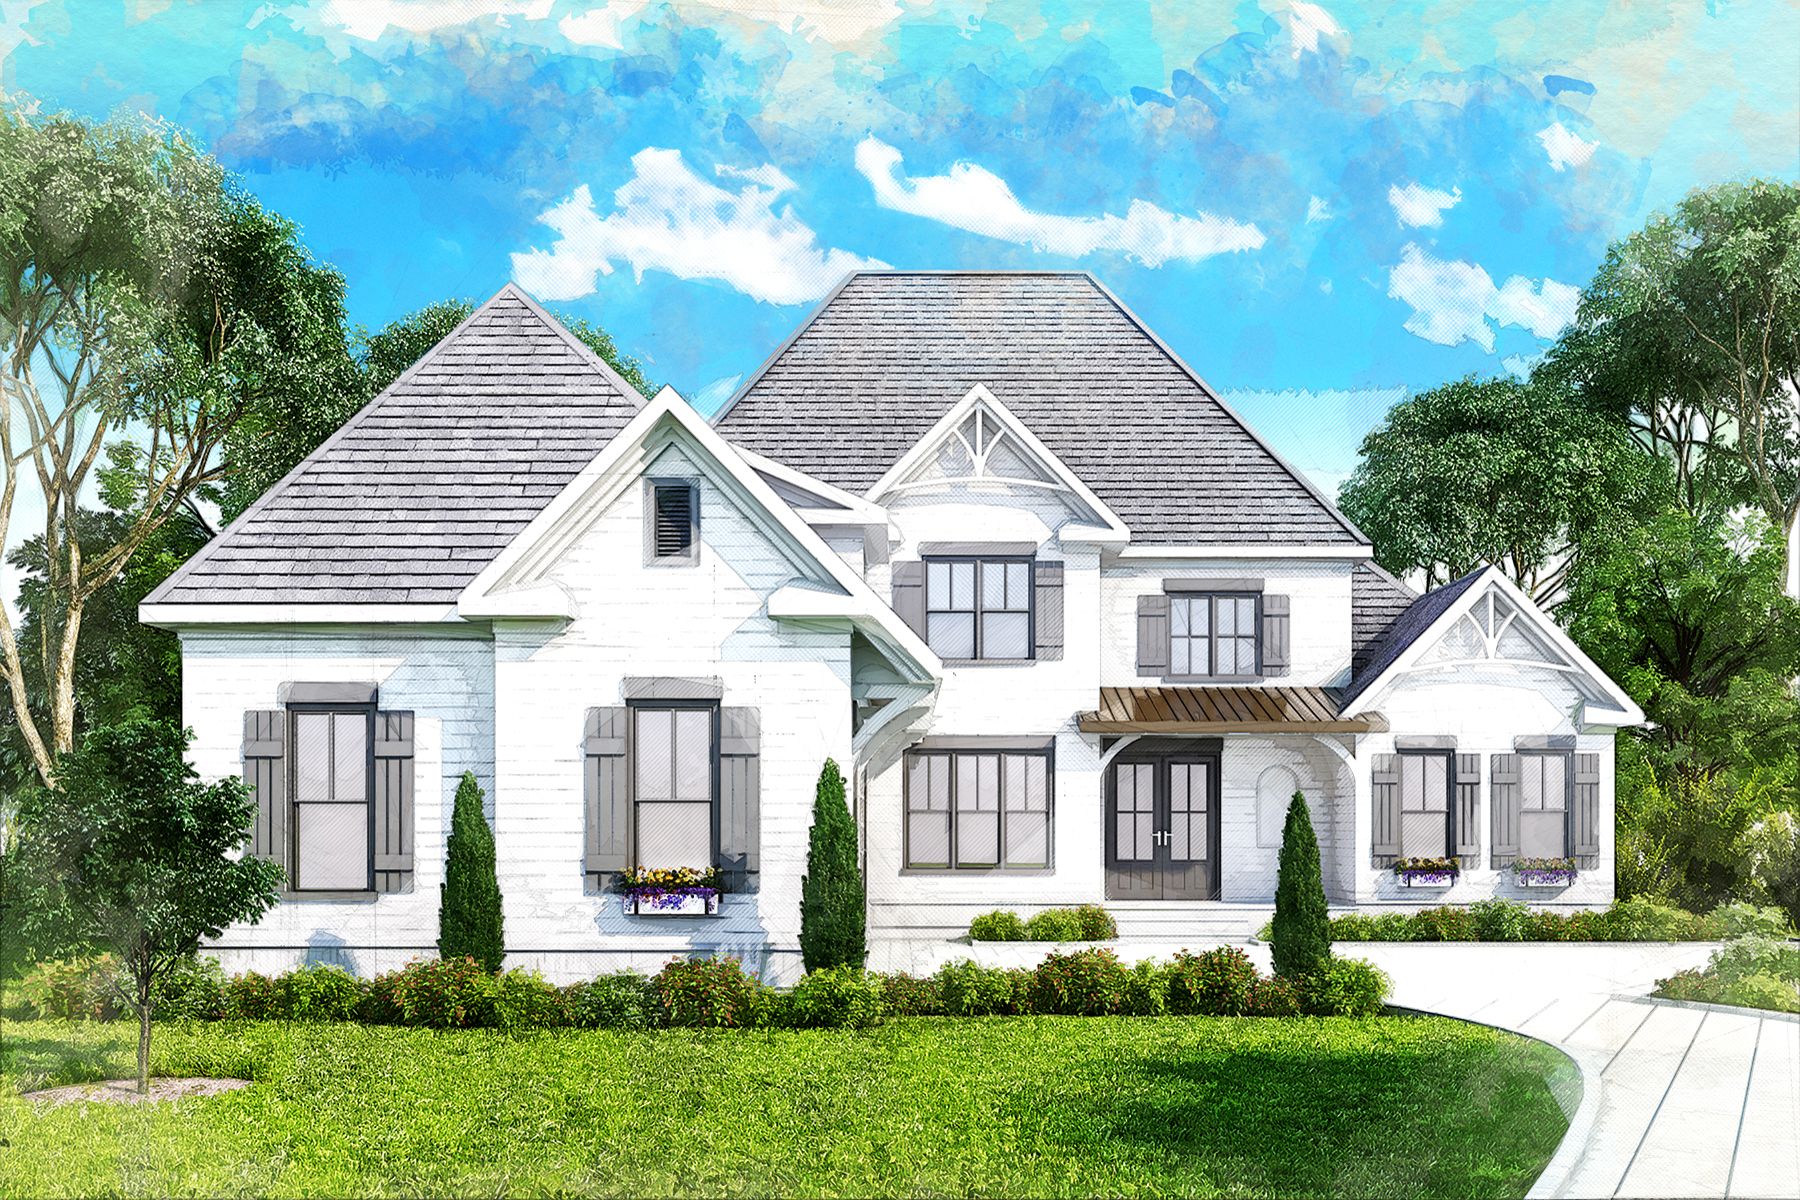 Property для того Продажа на The Manor Cottages 3530 Watsons Bend, Alpharetta, Джорджия 30004 Соединенные Штаты